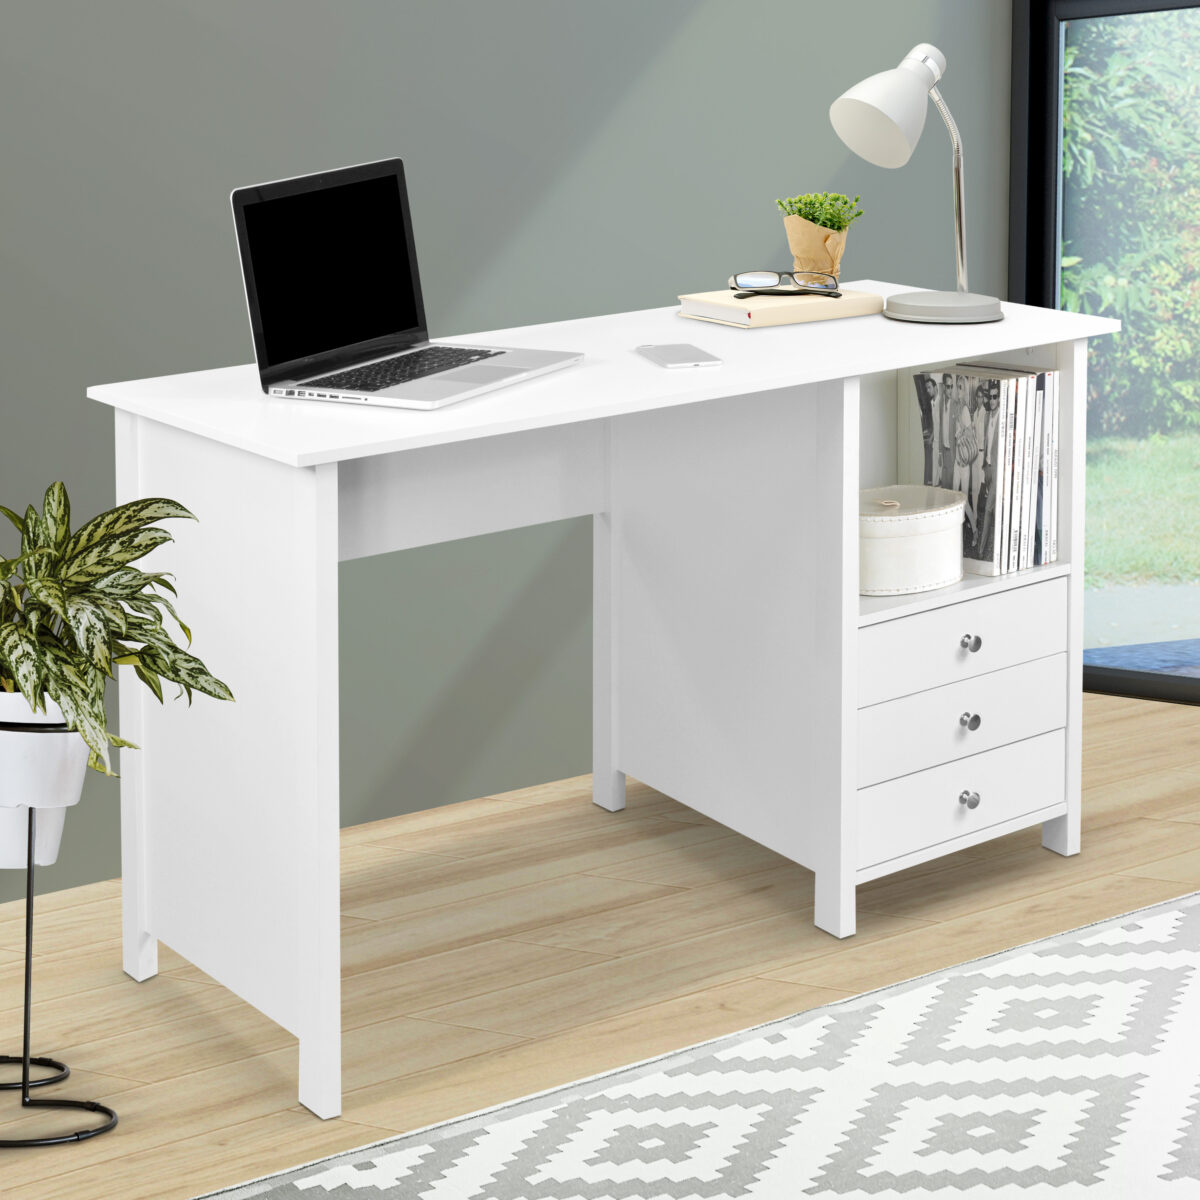 create-the-ergonomic-workstation-to-work-at-home-5